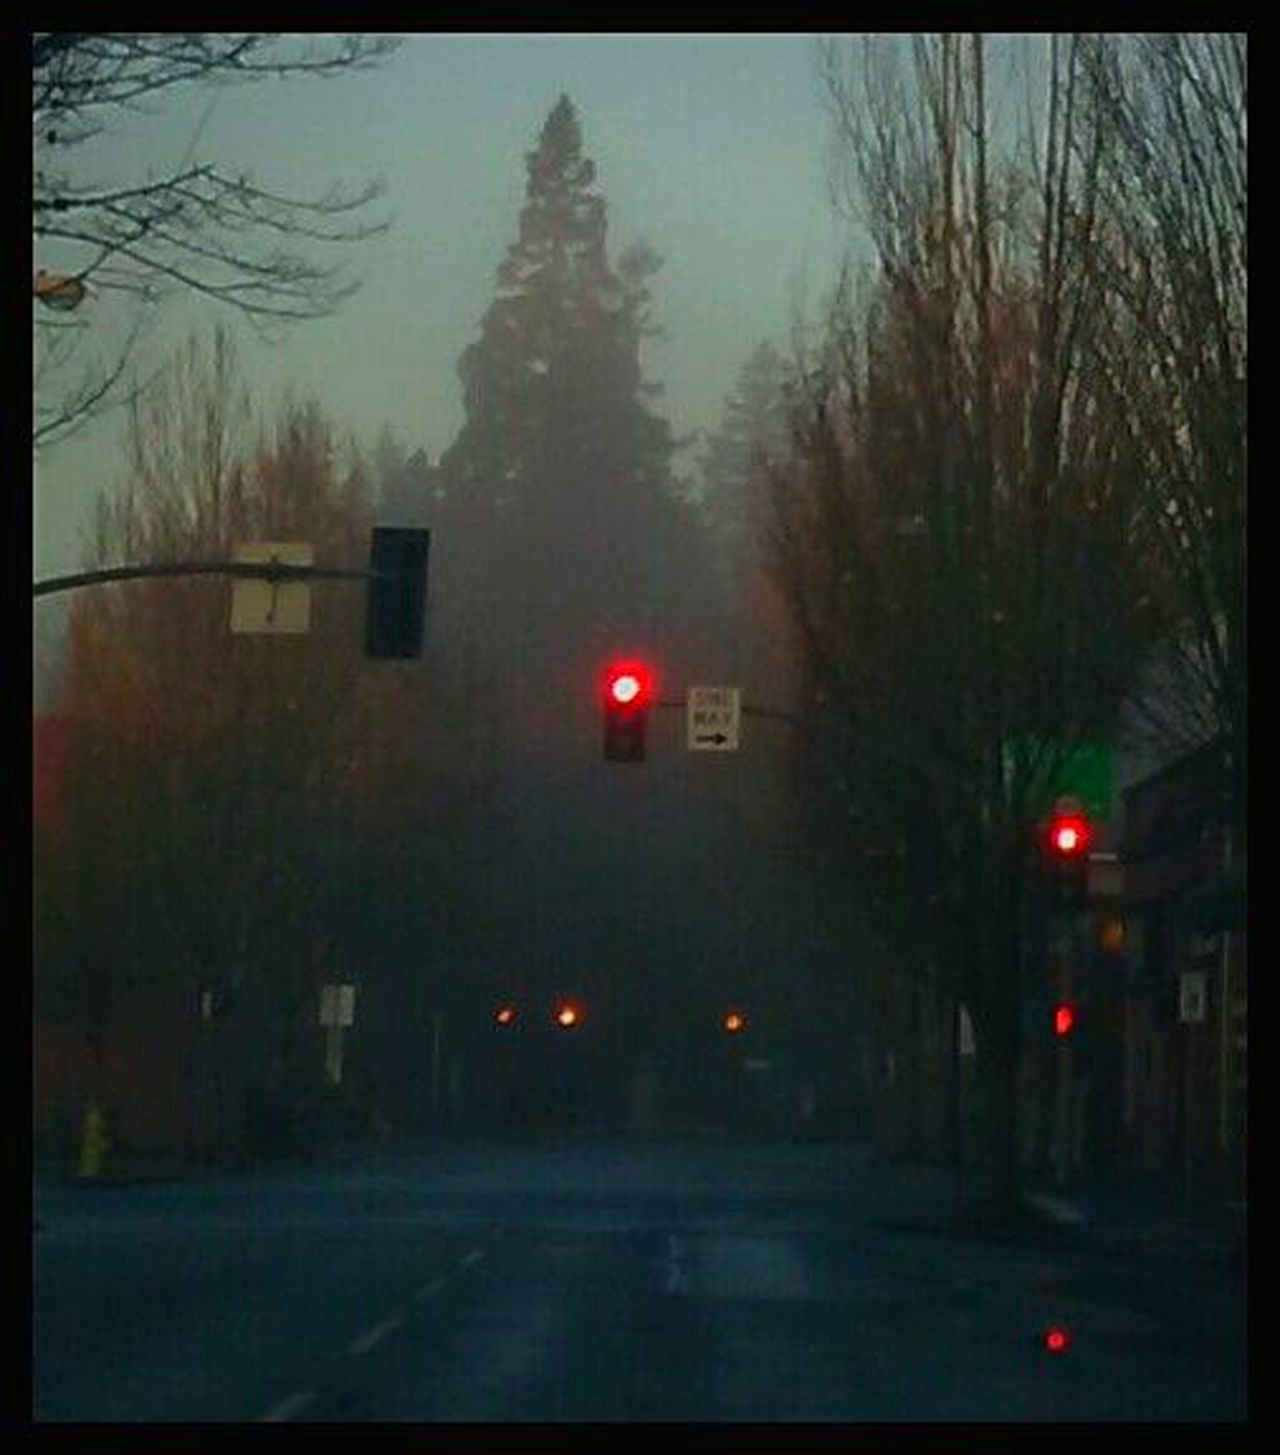 Outdoors Illuminated Transportation Traffic Signal City Bare Tree Red Light Fog Foggyness 3rd Street Morning Fog Thick Fog Lit Up With Lights Idyllic EyeEm Gallery Capturing Magic Streemzoofamily Getty Images Focus On Foreground Architecture Old Towncenter Nostalgic Place Down Town Night Early Morning Mist